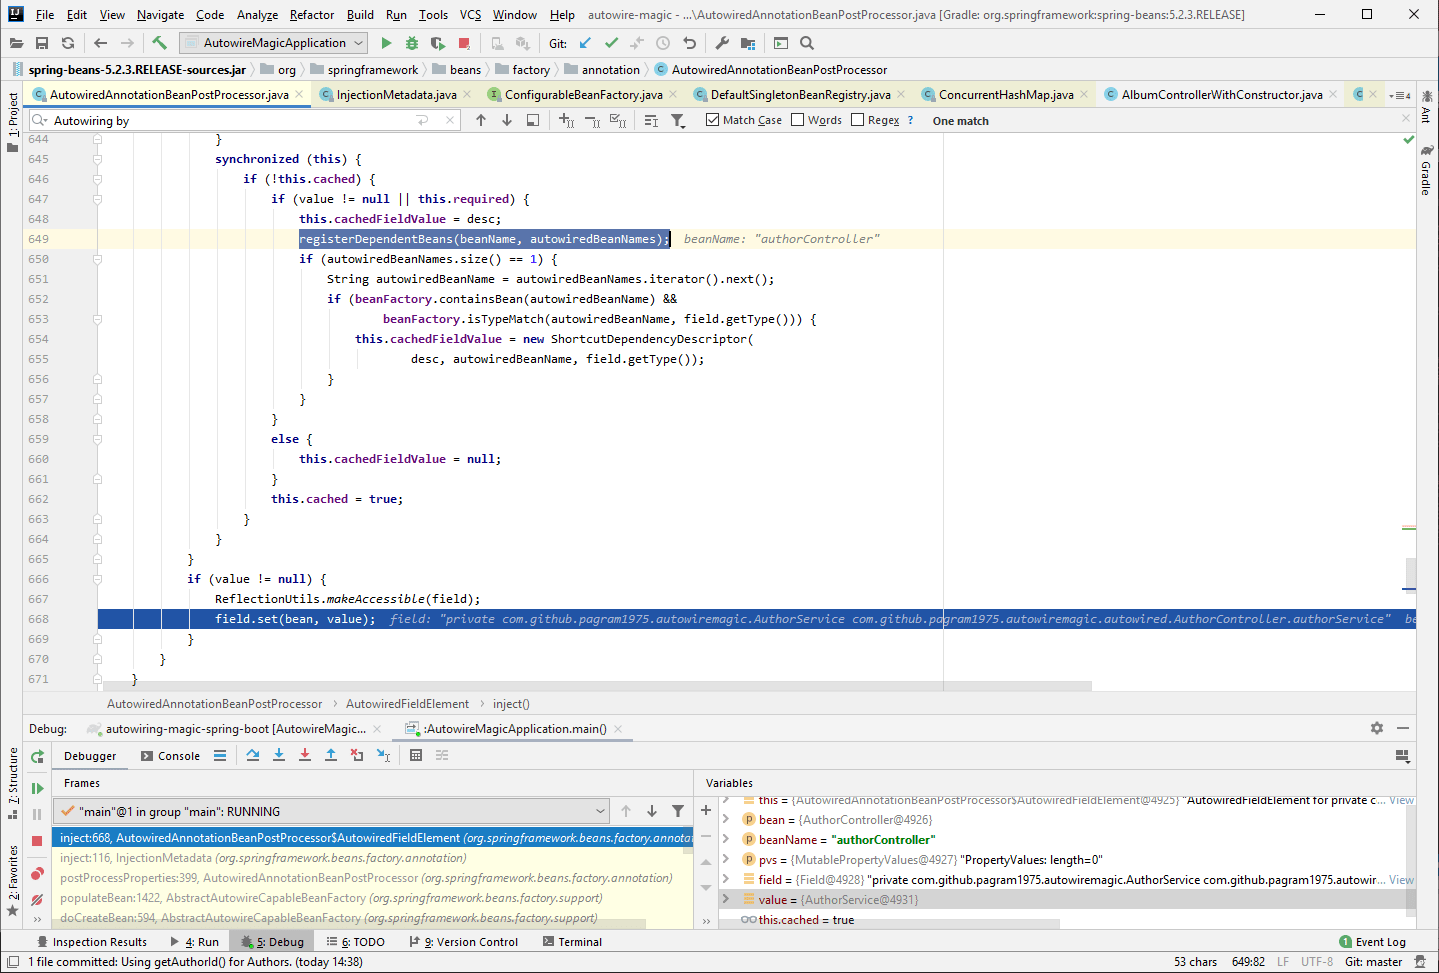 Debugging Spring in IntelliJ Idea to see how the dependency is resolved and set